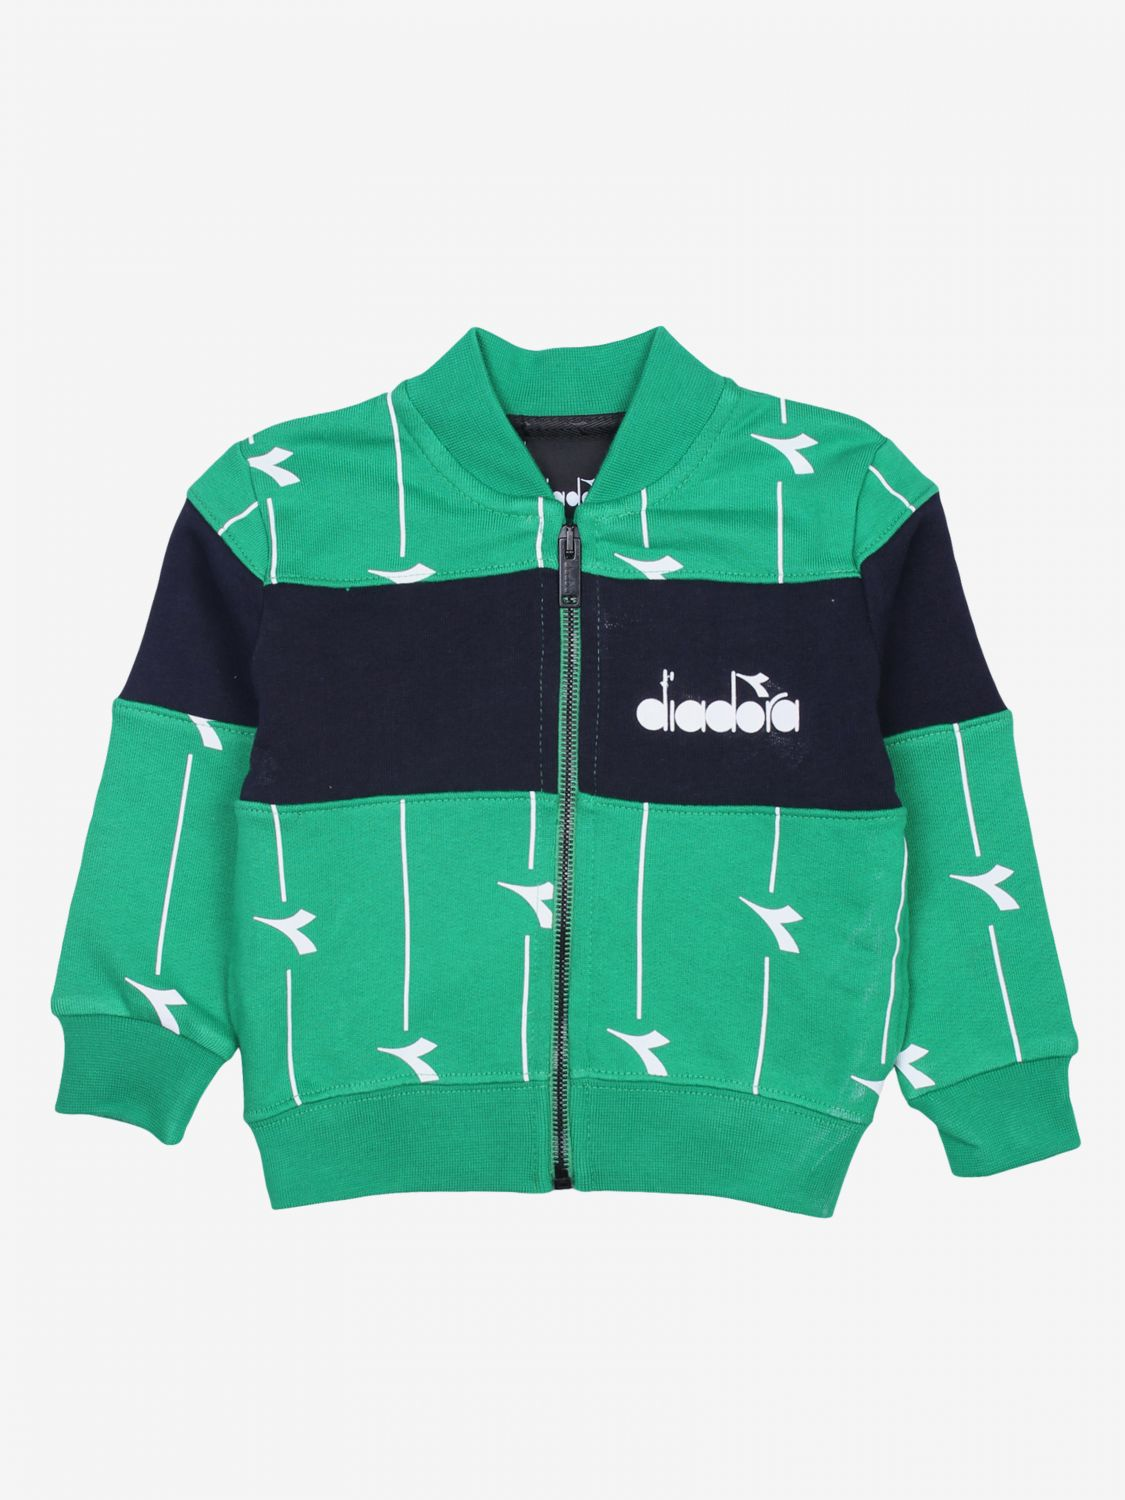 Sweater kids Diadora green 1